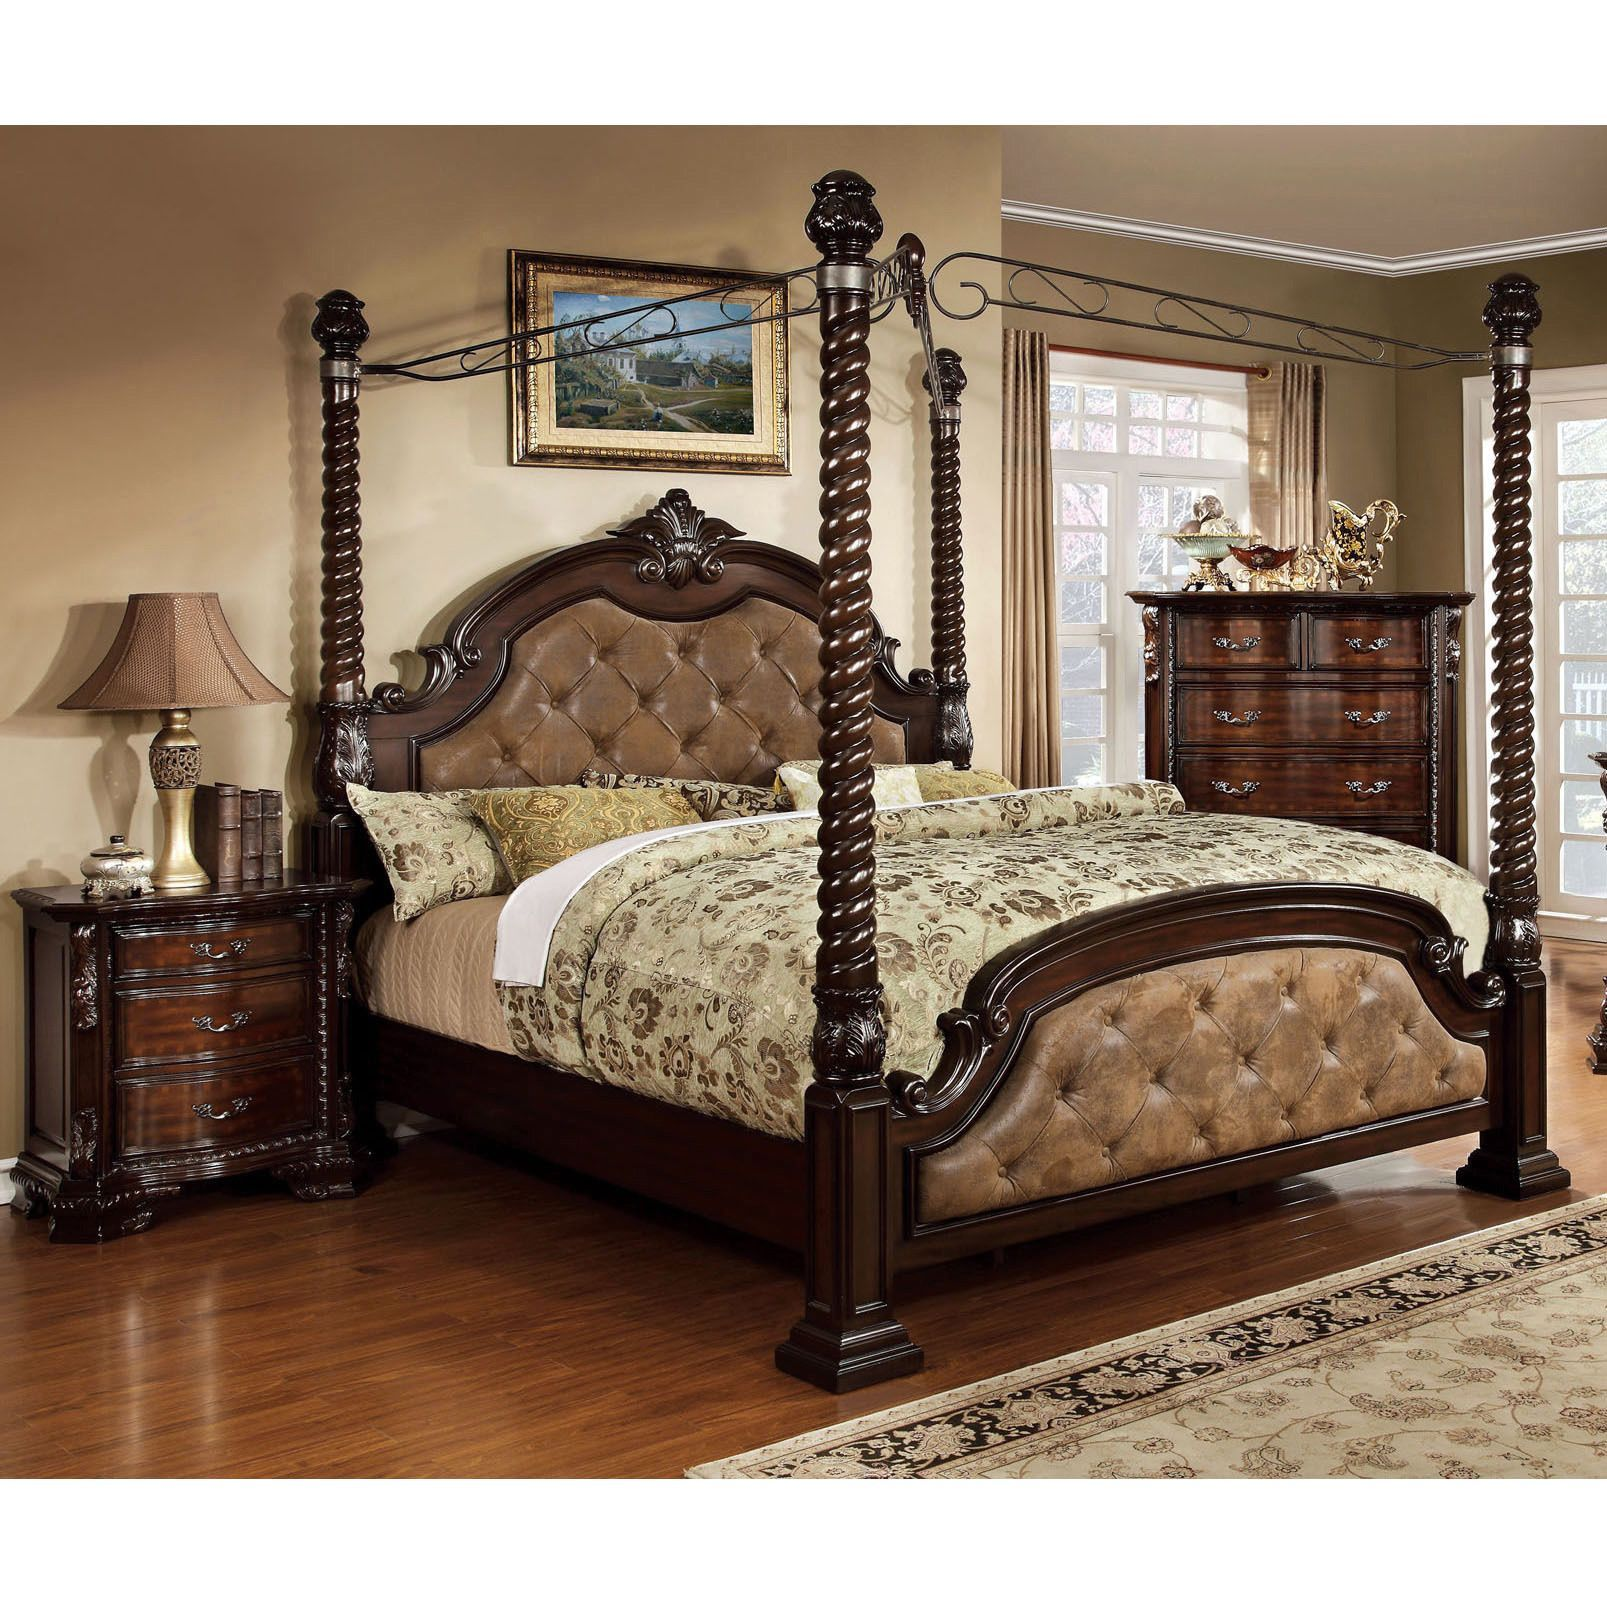 furniture of america kassania luxury 3 piece poster canopy bed set rh in pinterest com